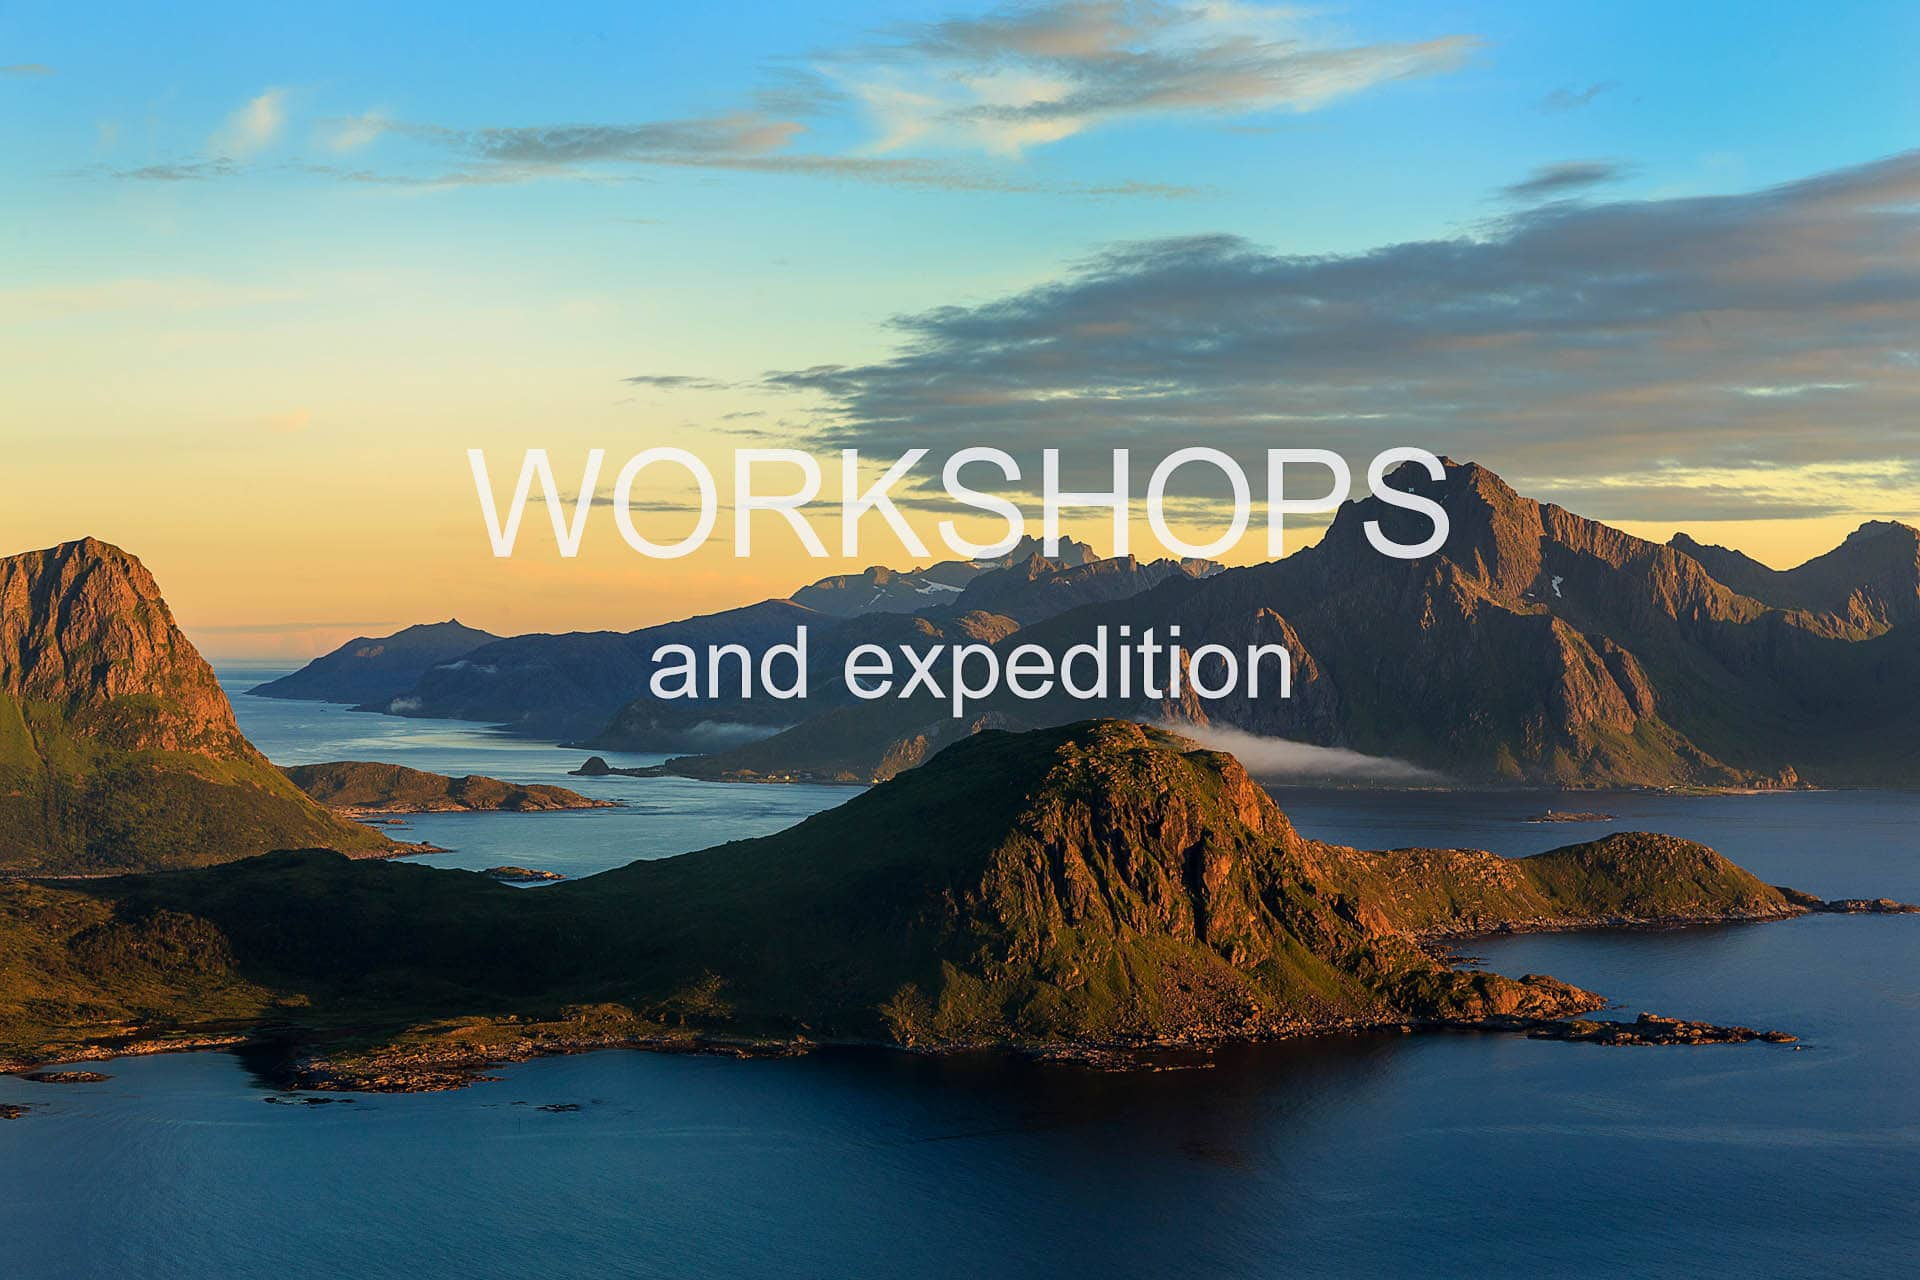 Workshops and expeditions